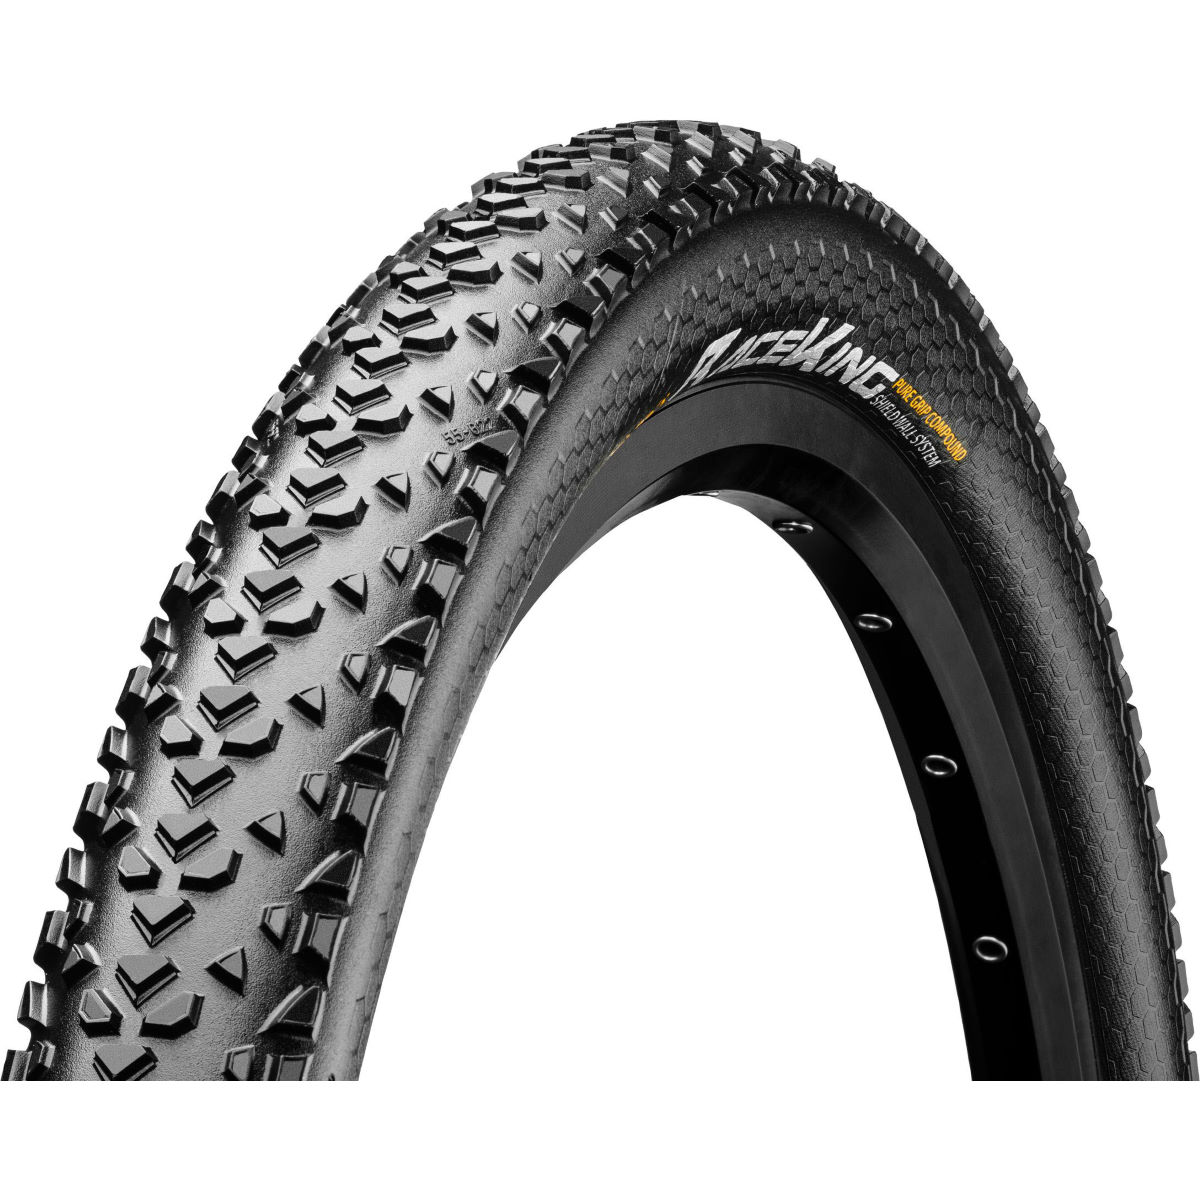 Continental Continental Race King II Performance Folding MTB Tyre   Tyres